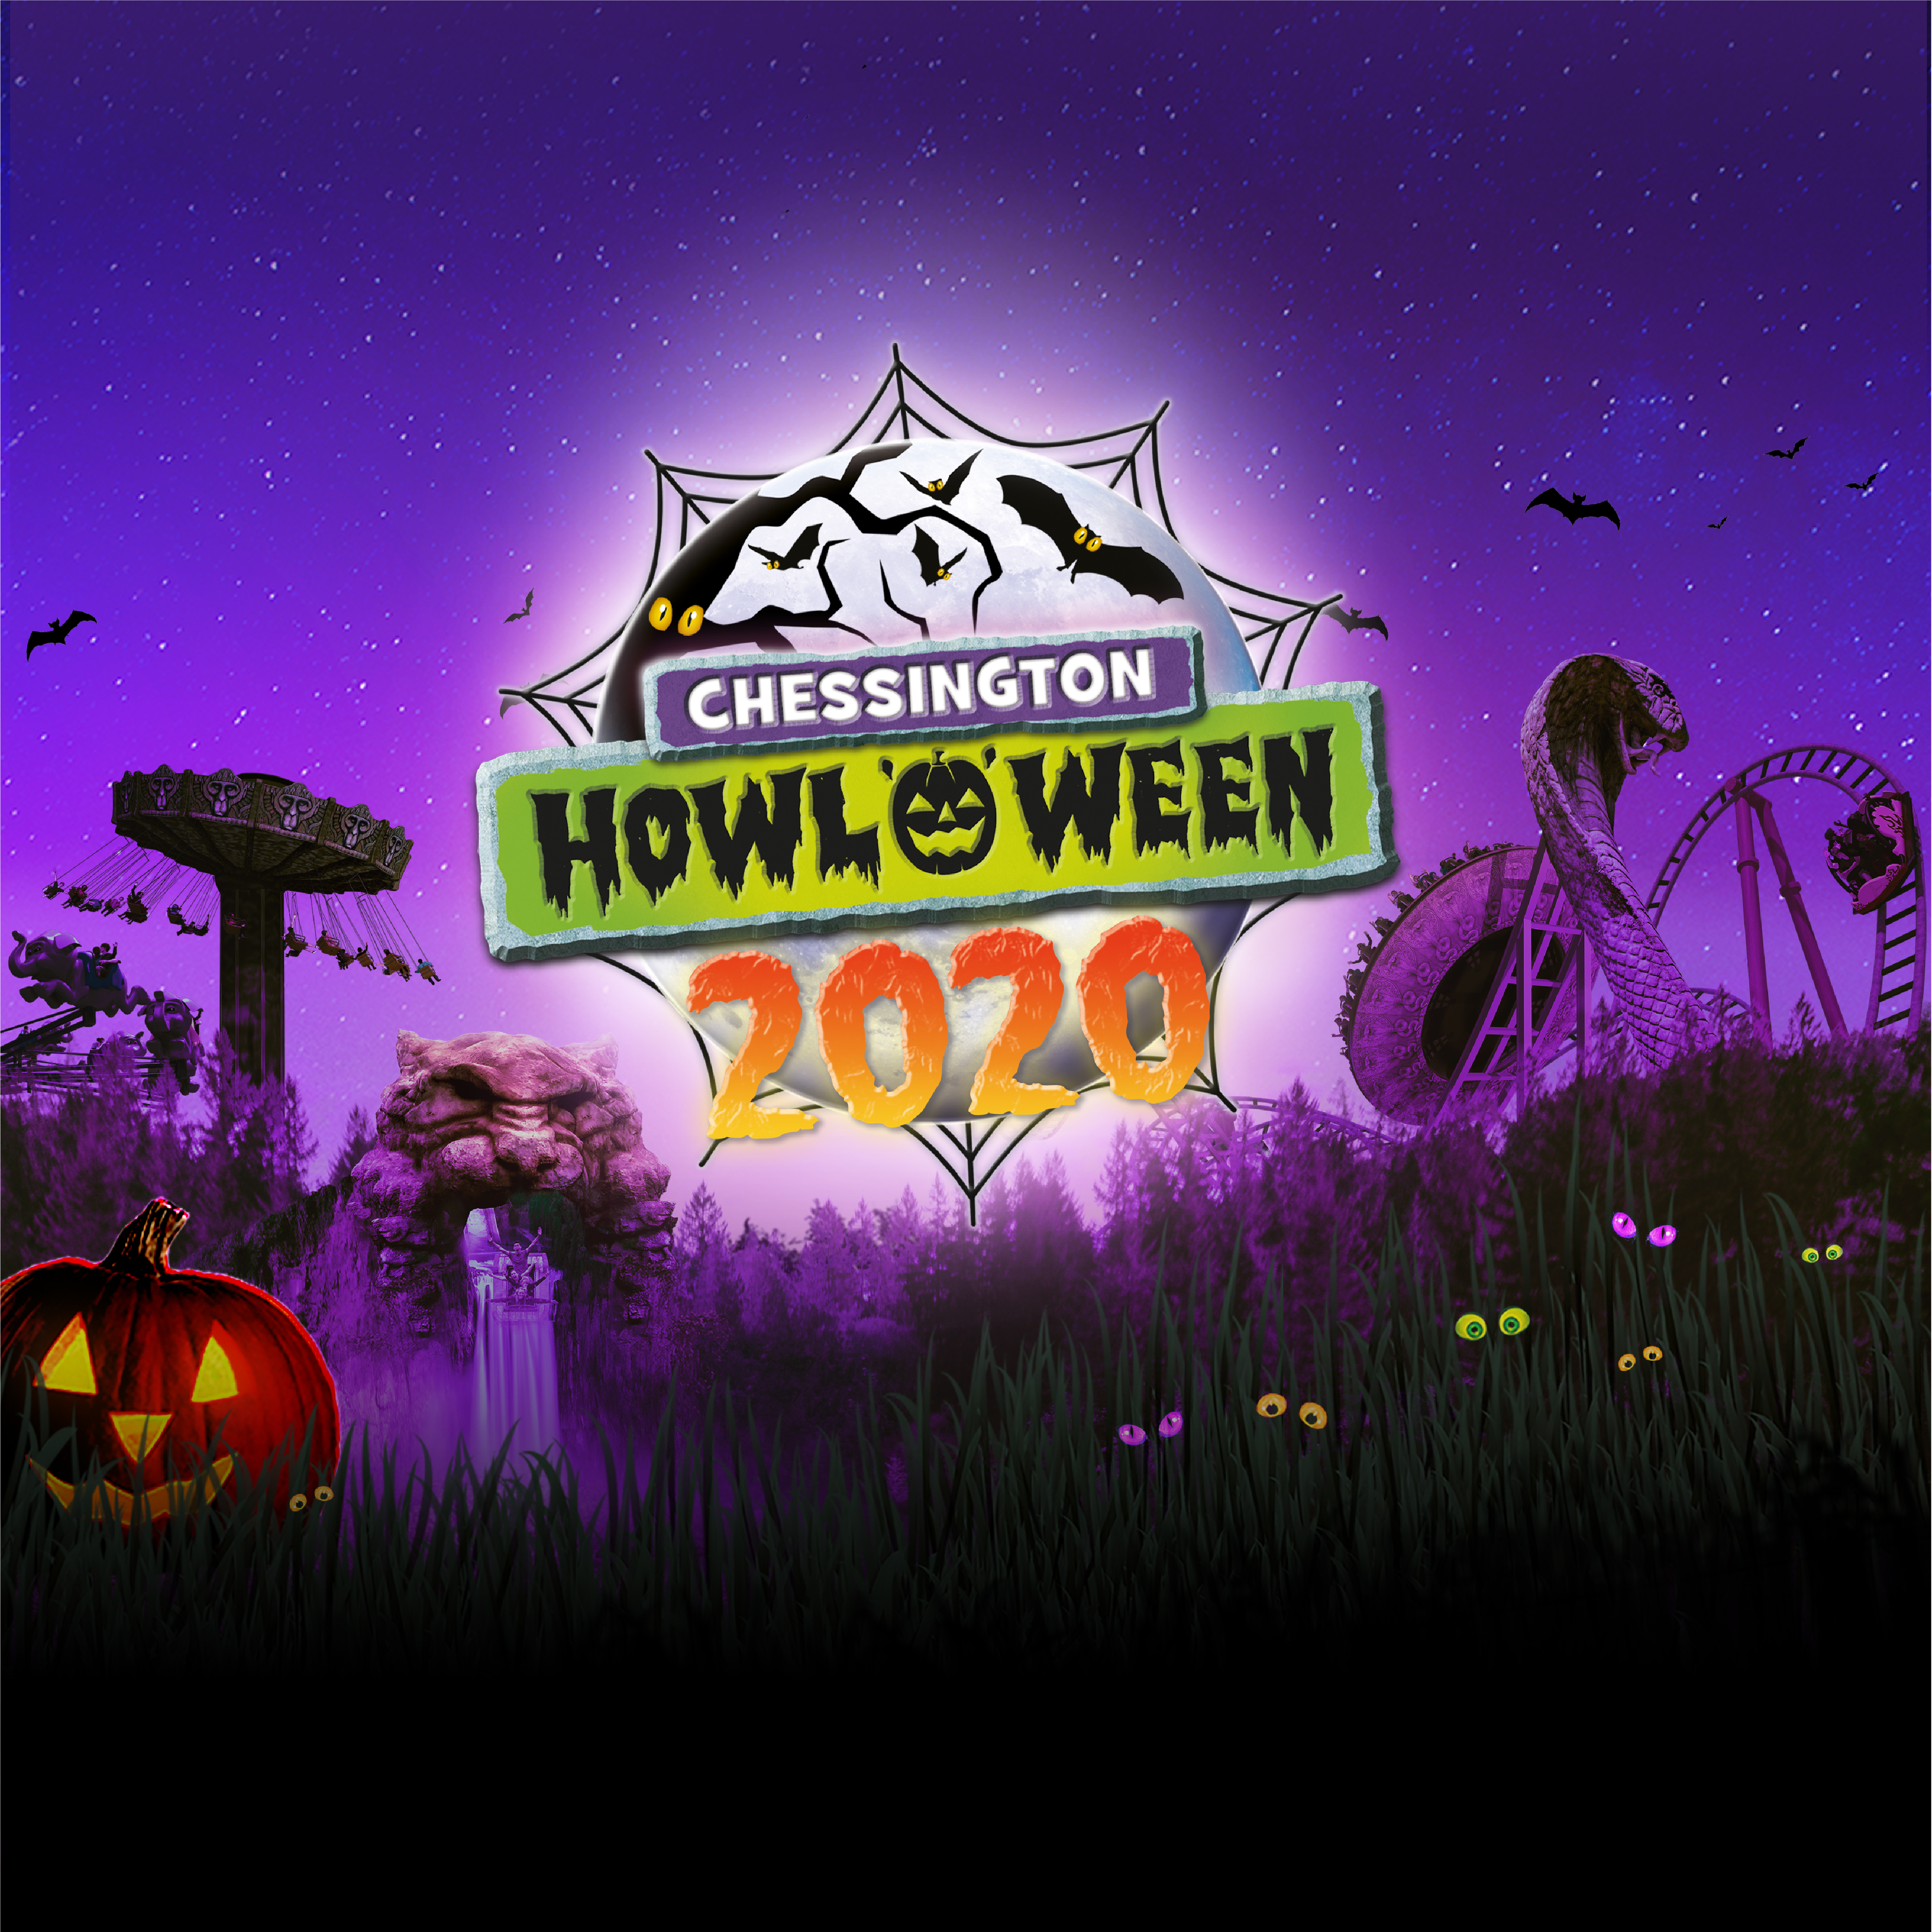 Family Halloween Event Howl O Ween At Chessington